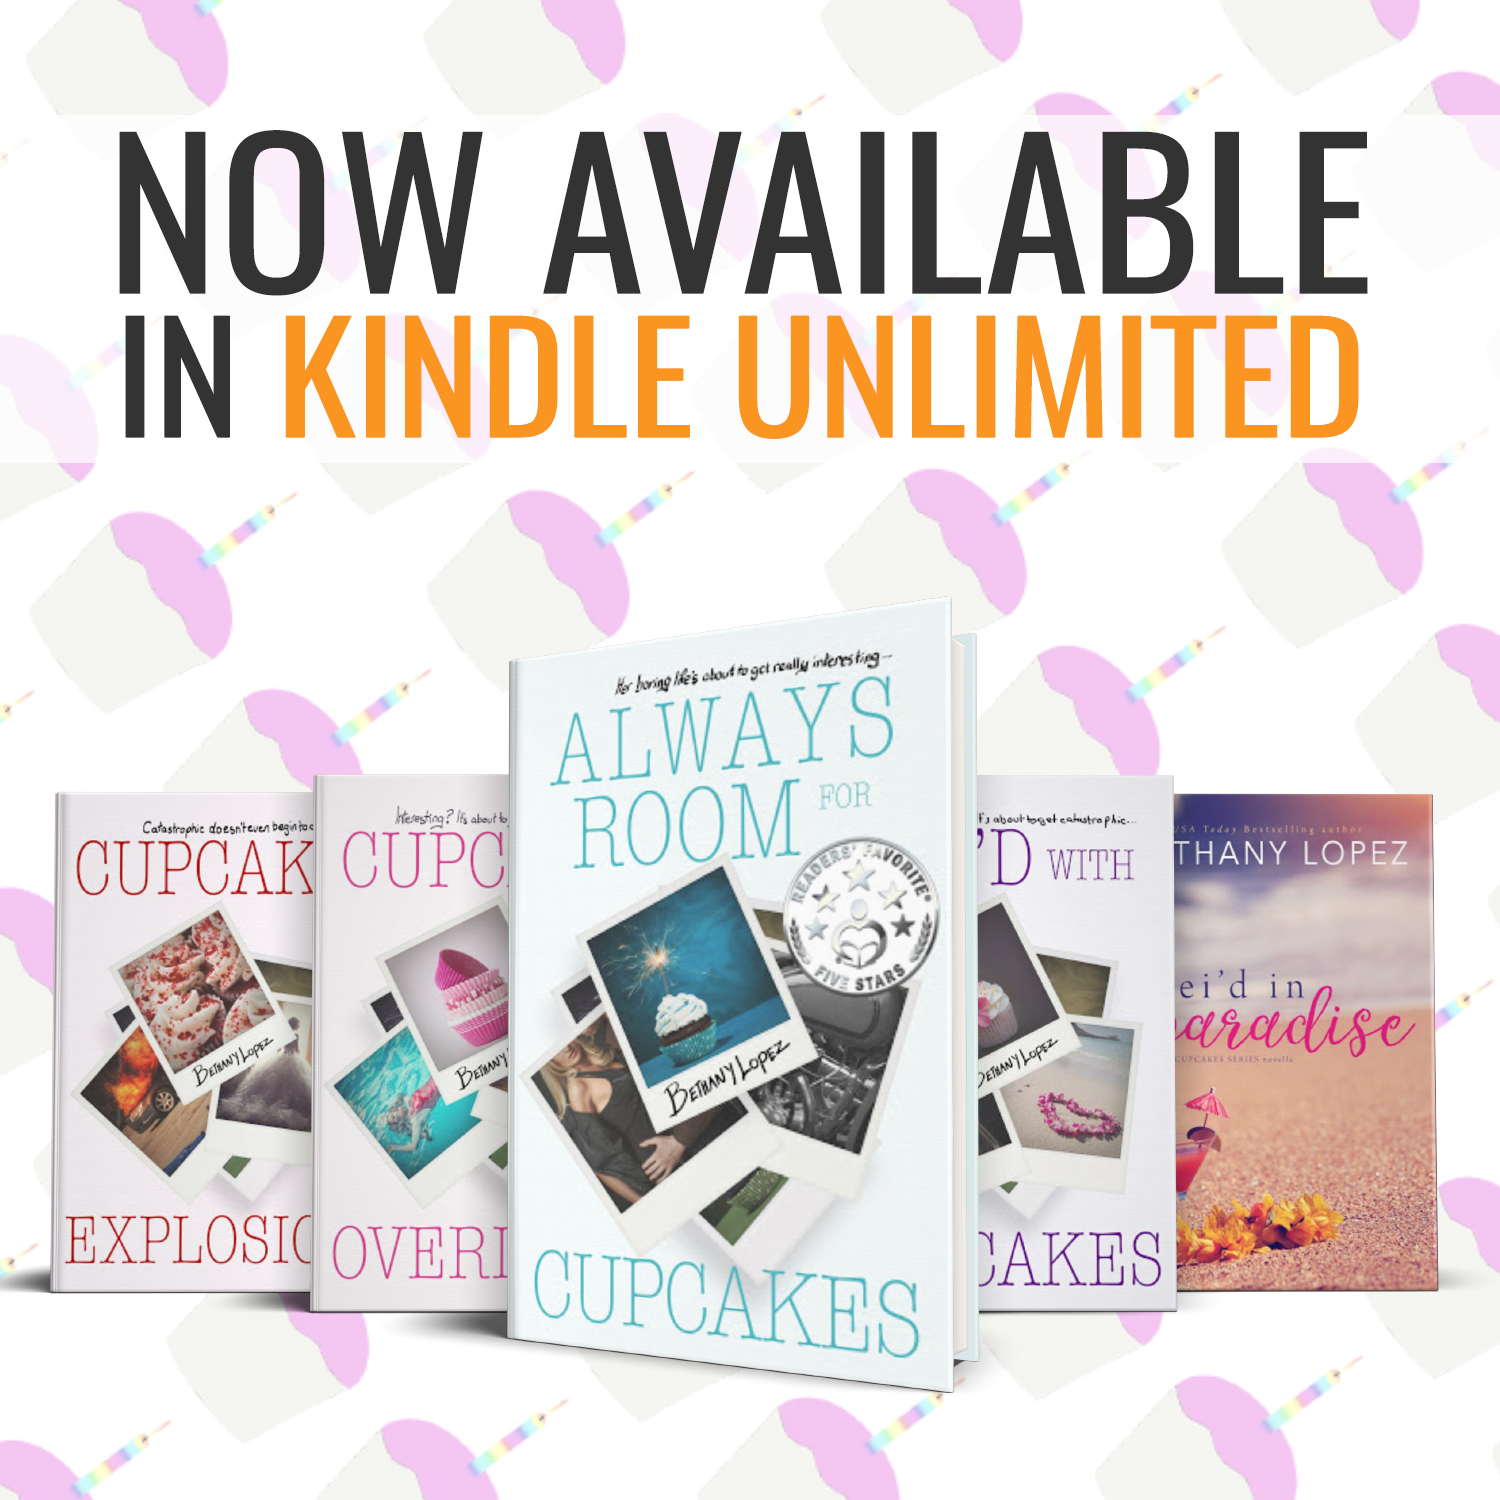 CUPCAKES SERIES by Bethany Lopez – Now in Kindle Unlimited!